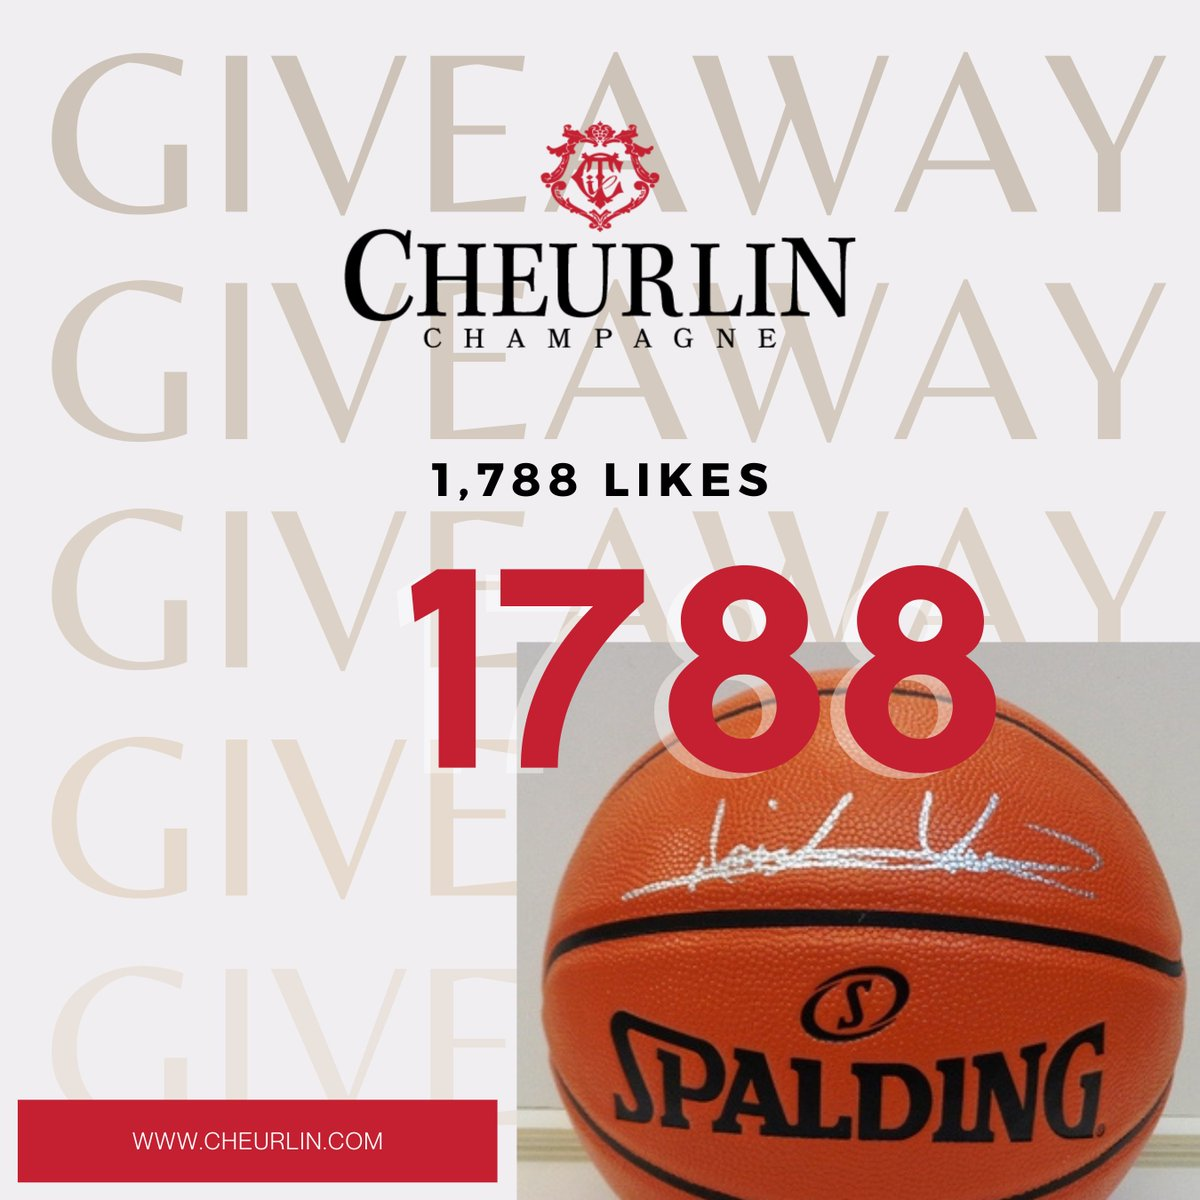 GIVEAWAY! Once we hit 1788 likes on Facebook, we will pull 3 names-2 people will win autographed Isiah photos and 1 will win an autographed basketball! All you have to do is like our FB page! (Everyone who has already liked our FB page will be included in the drawing) https://t.co/Sxs8xuT14u